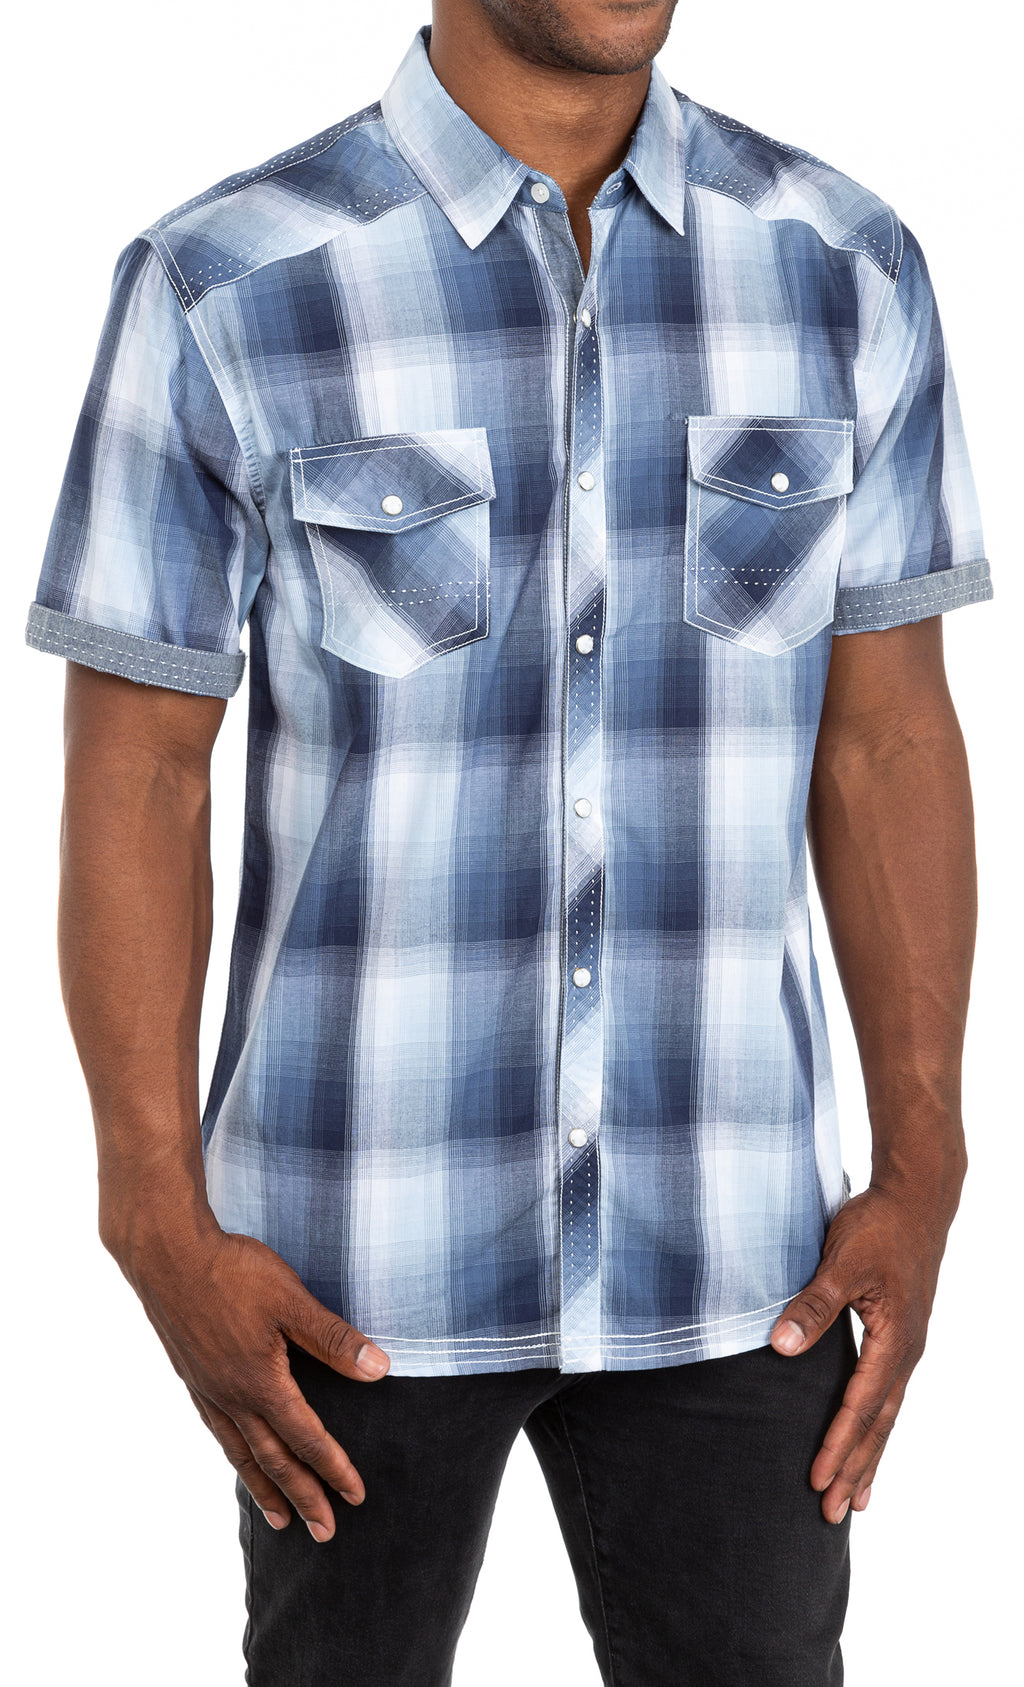 Refinery Button Front Plaid